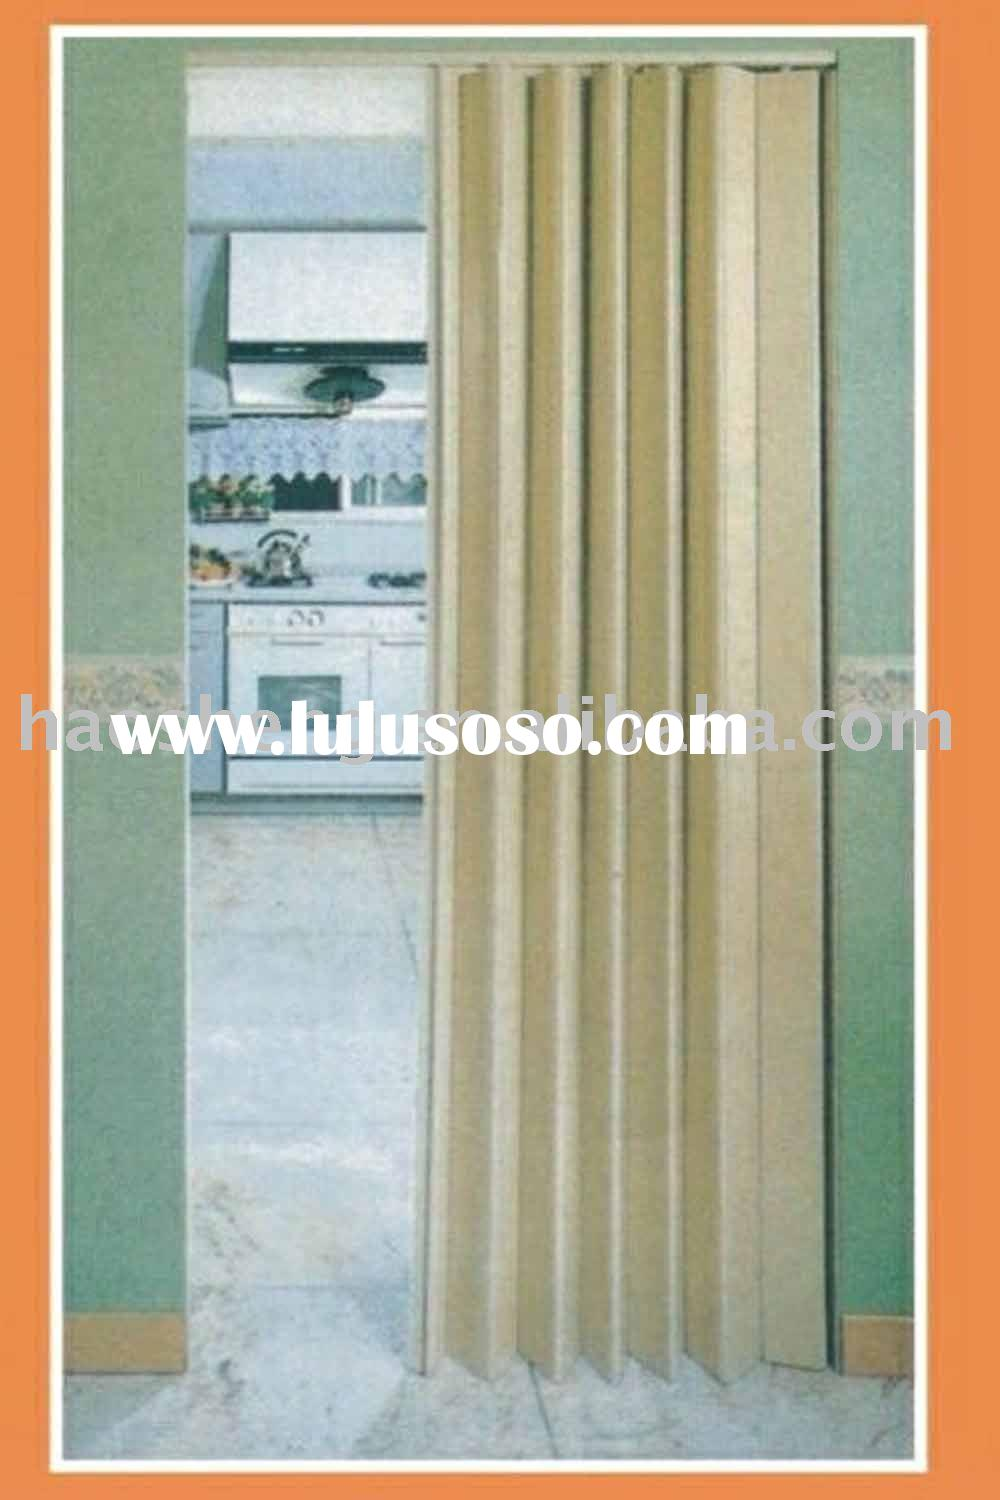 I Need Indoor Sliding Door Where Can Buy One In Cm Chiang Mai Forum Thailand Visa Forum